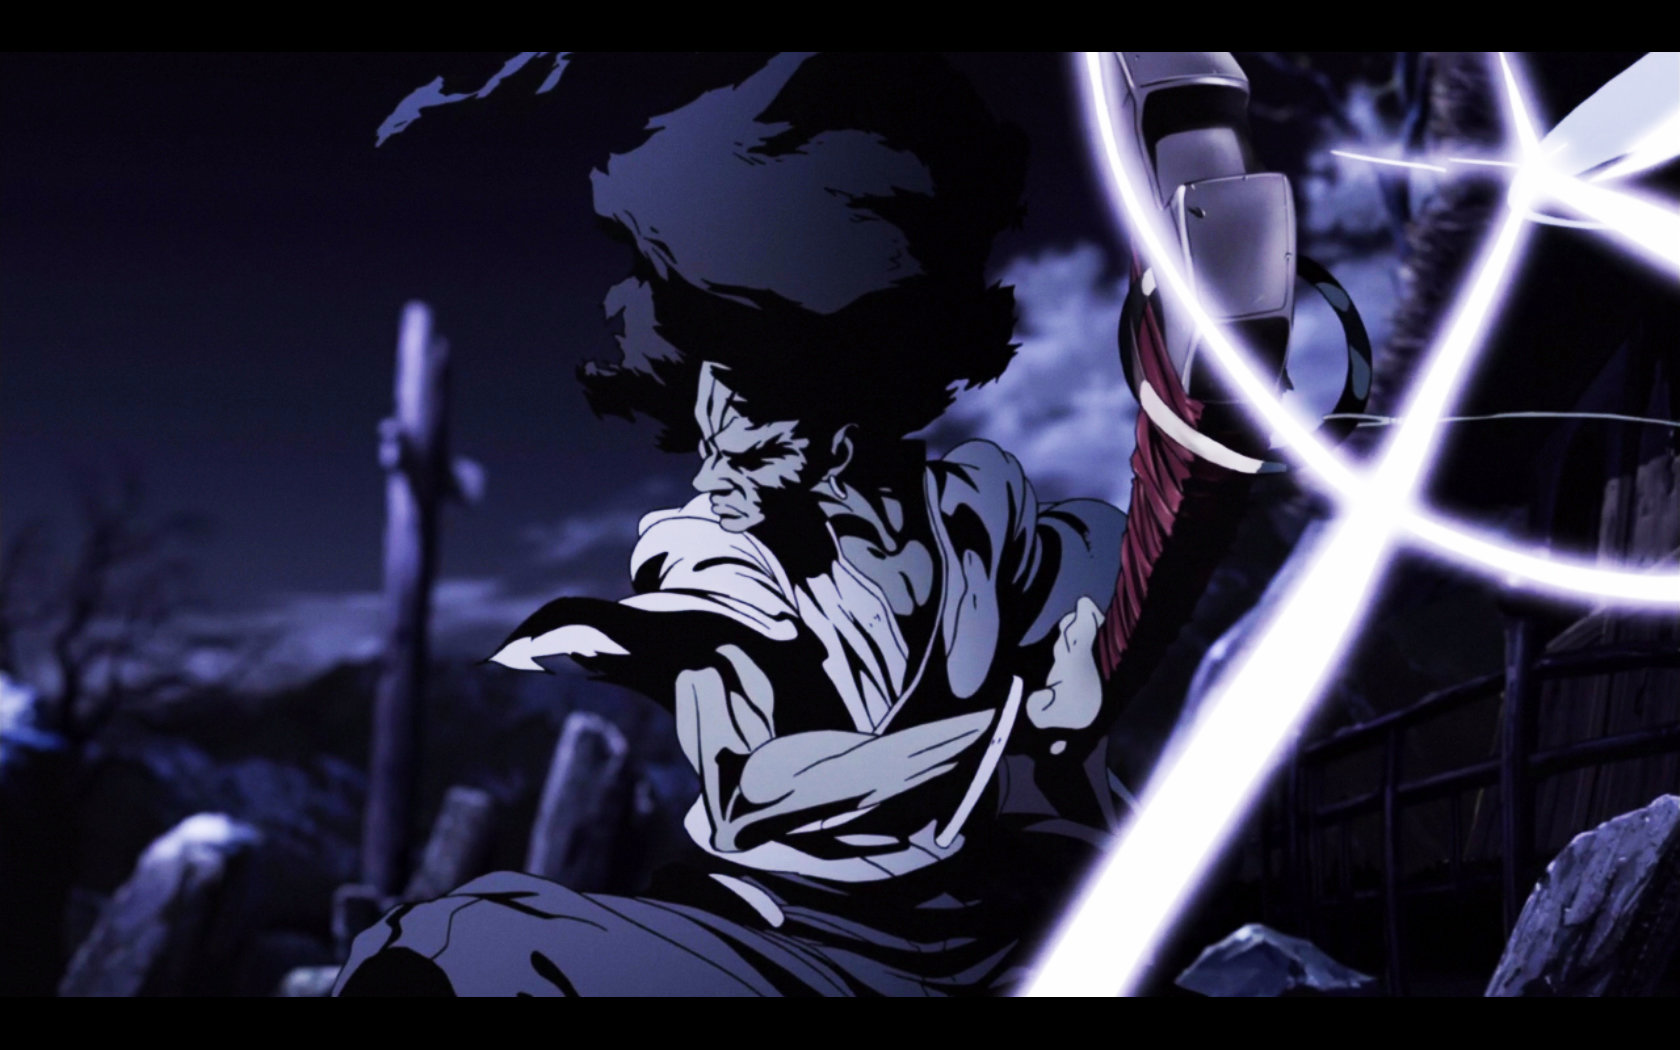 Download hd 1680x1050 Afro Samurai desktop background ID:329143 for free